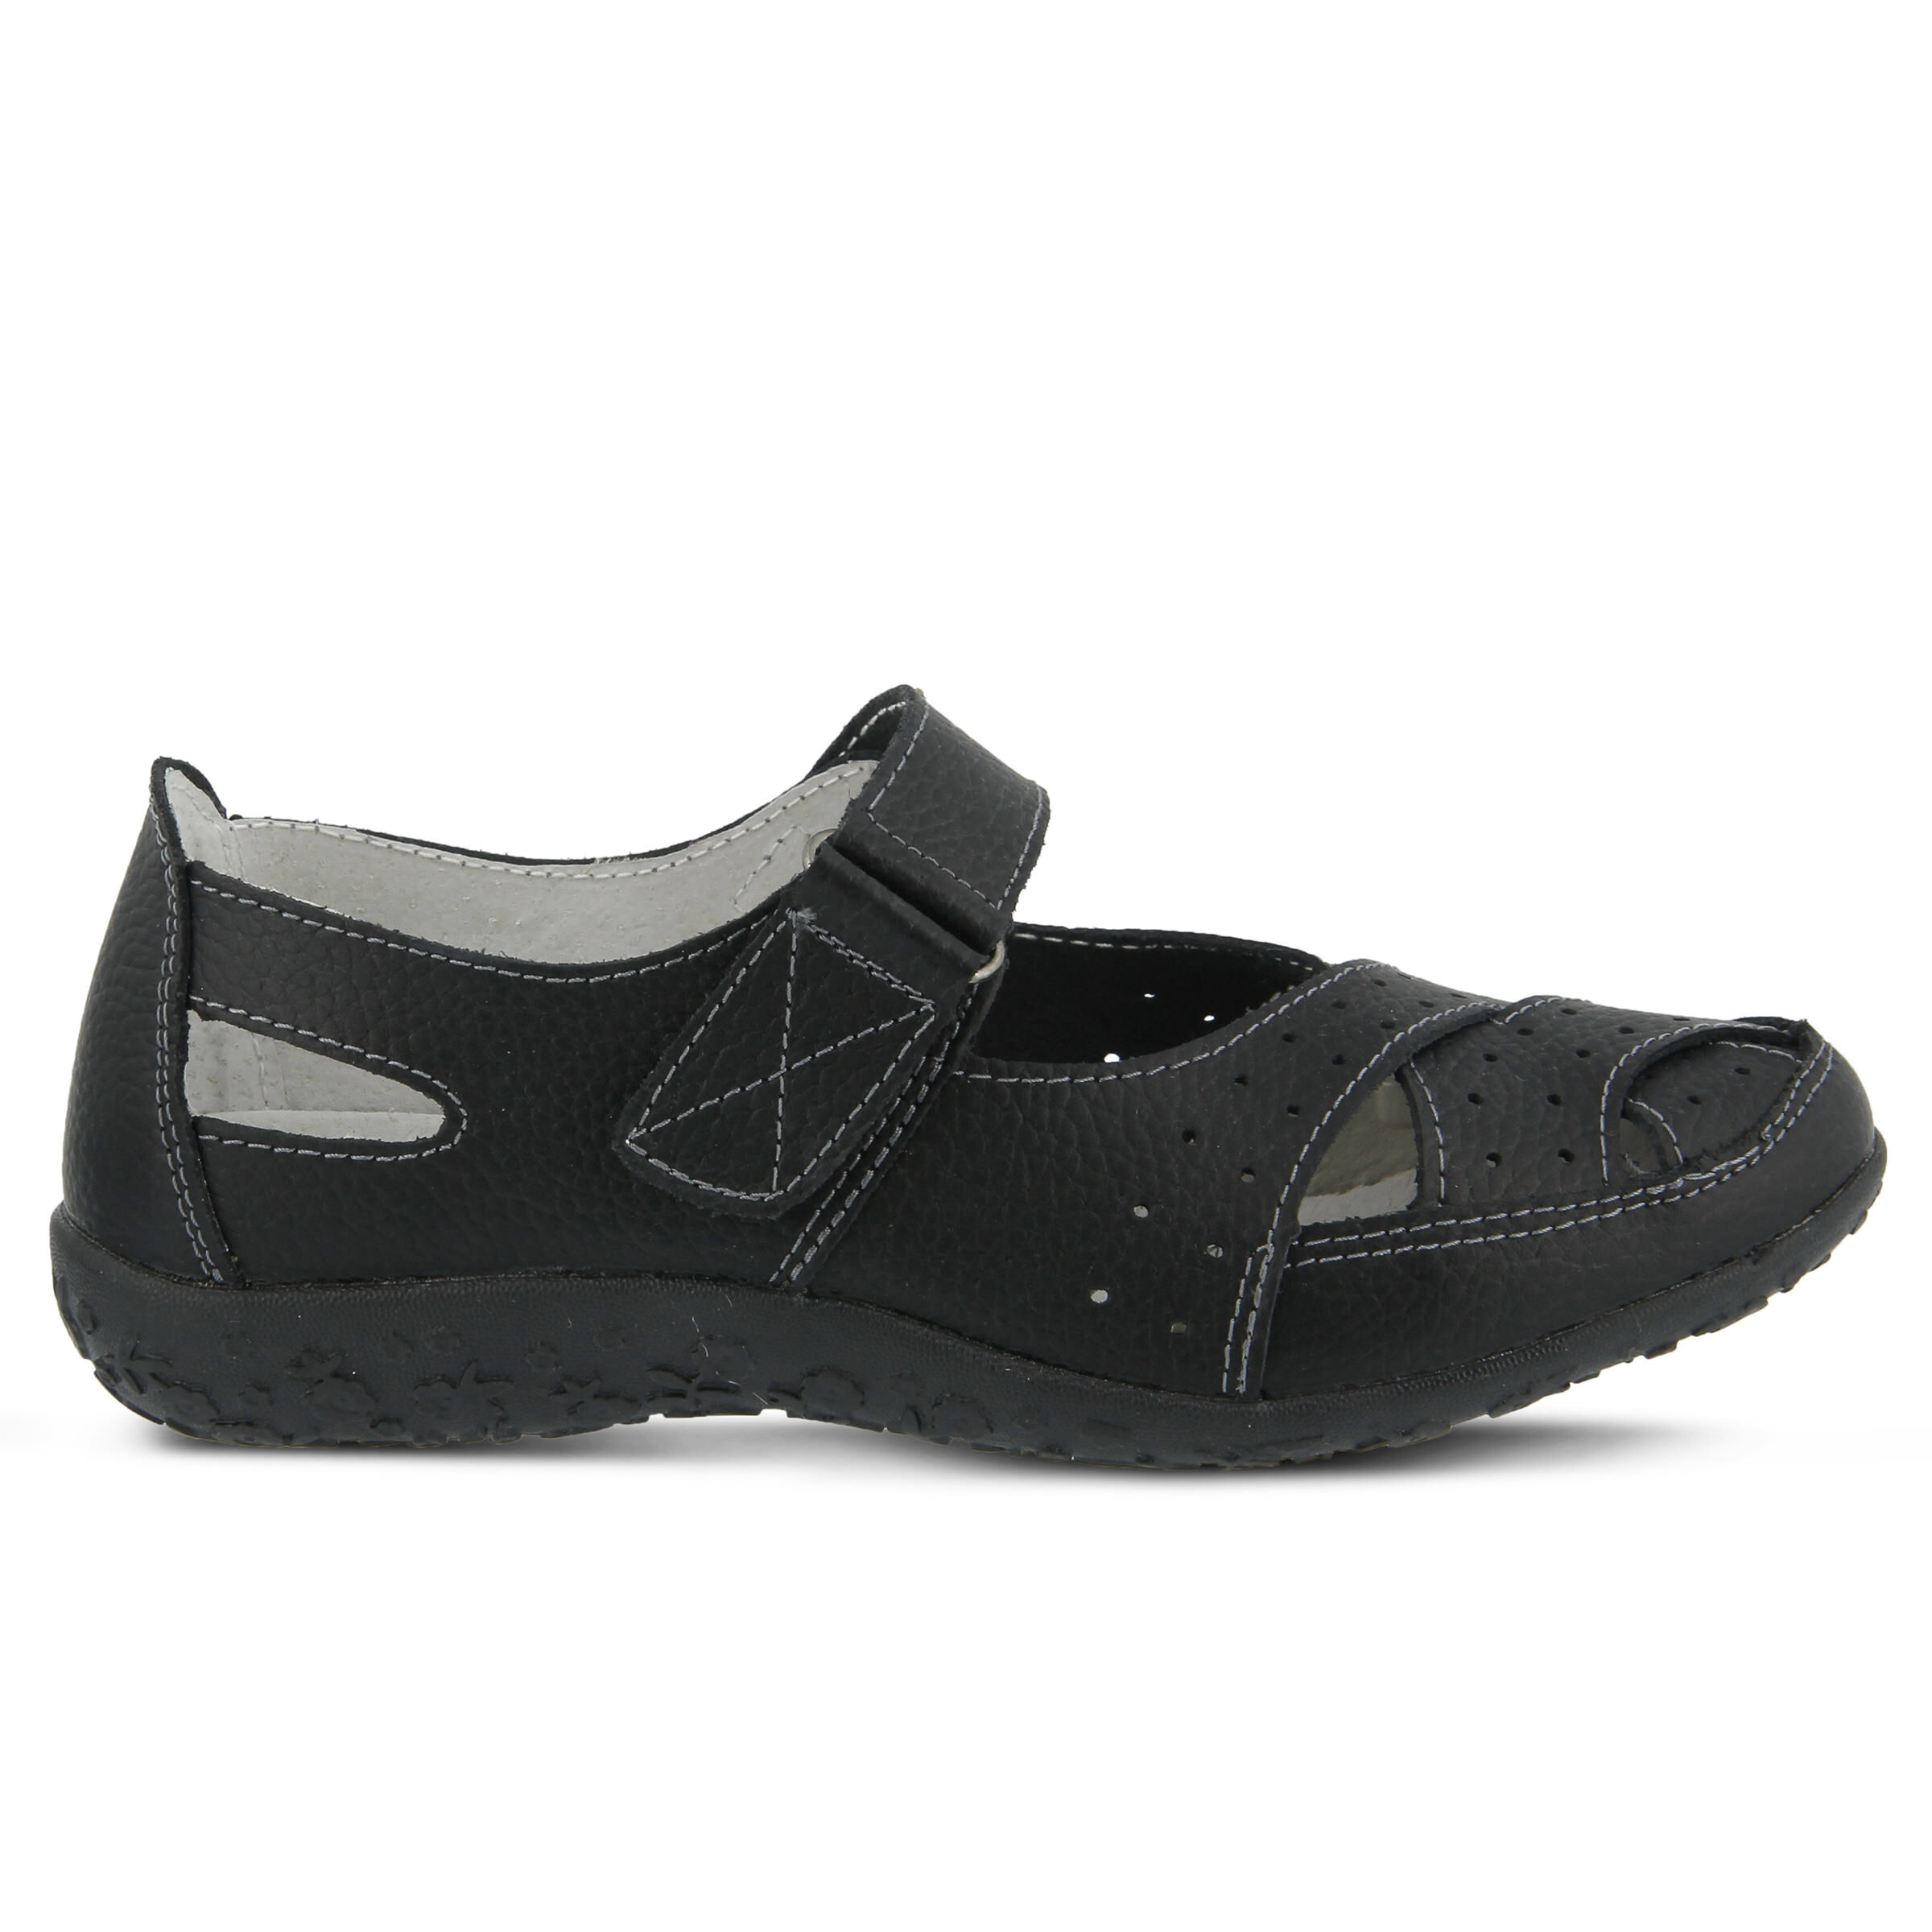 Women's SPRING STEP Streetwise Shoes Black